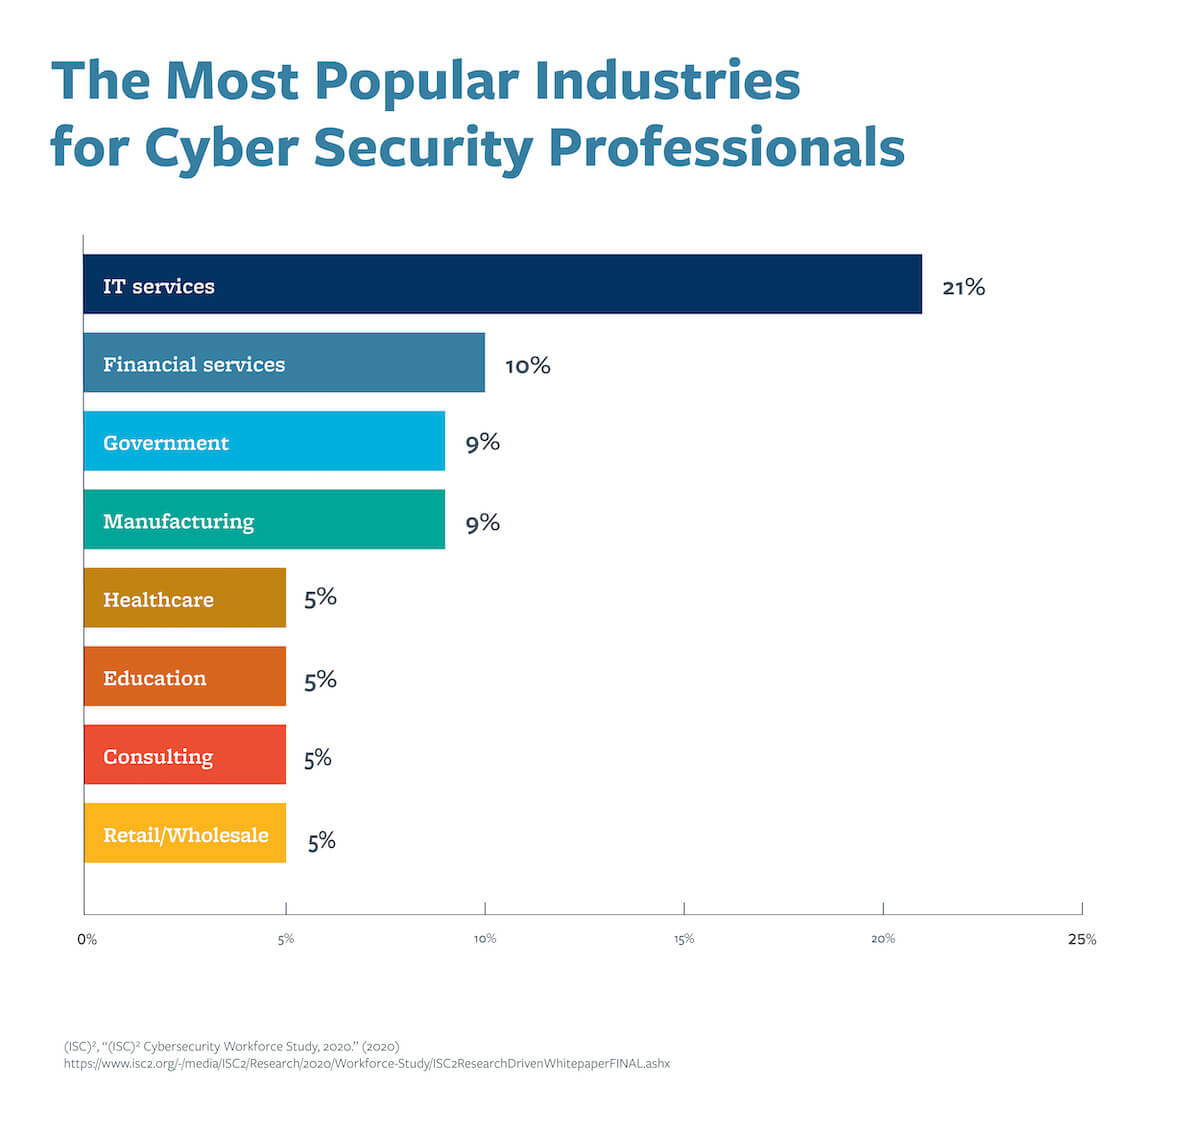 A graph that compares the most popular industries for cybersecurity professionals.